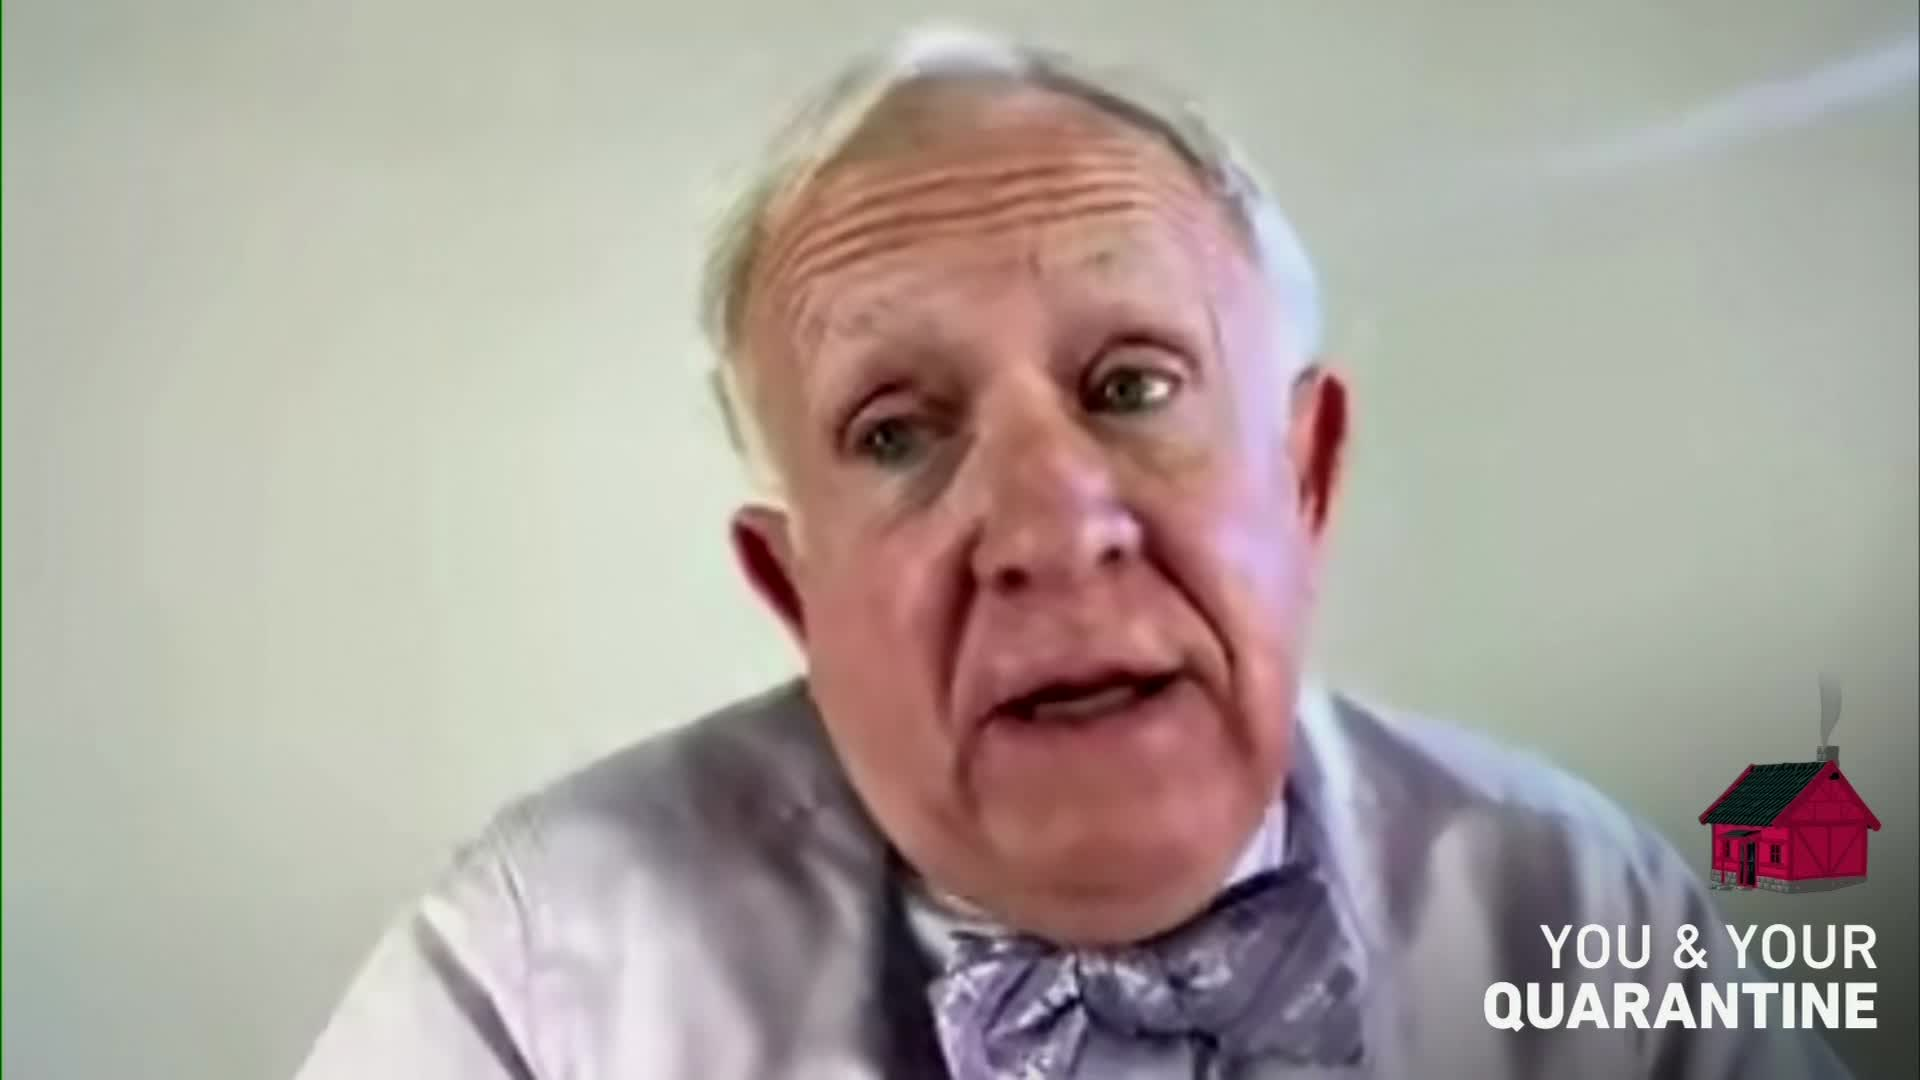 Actor Leslie Jordan reveals details of his life in quarantine